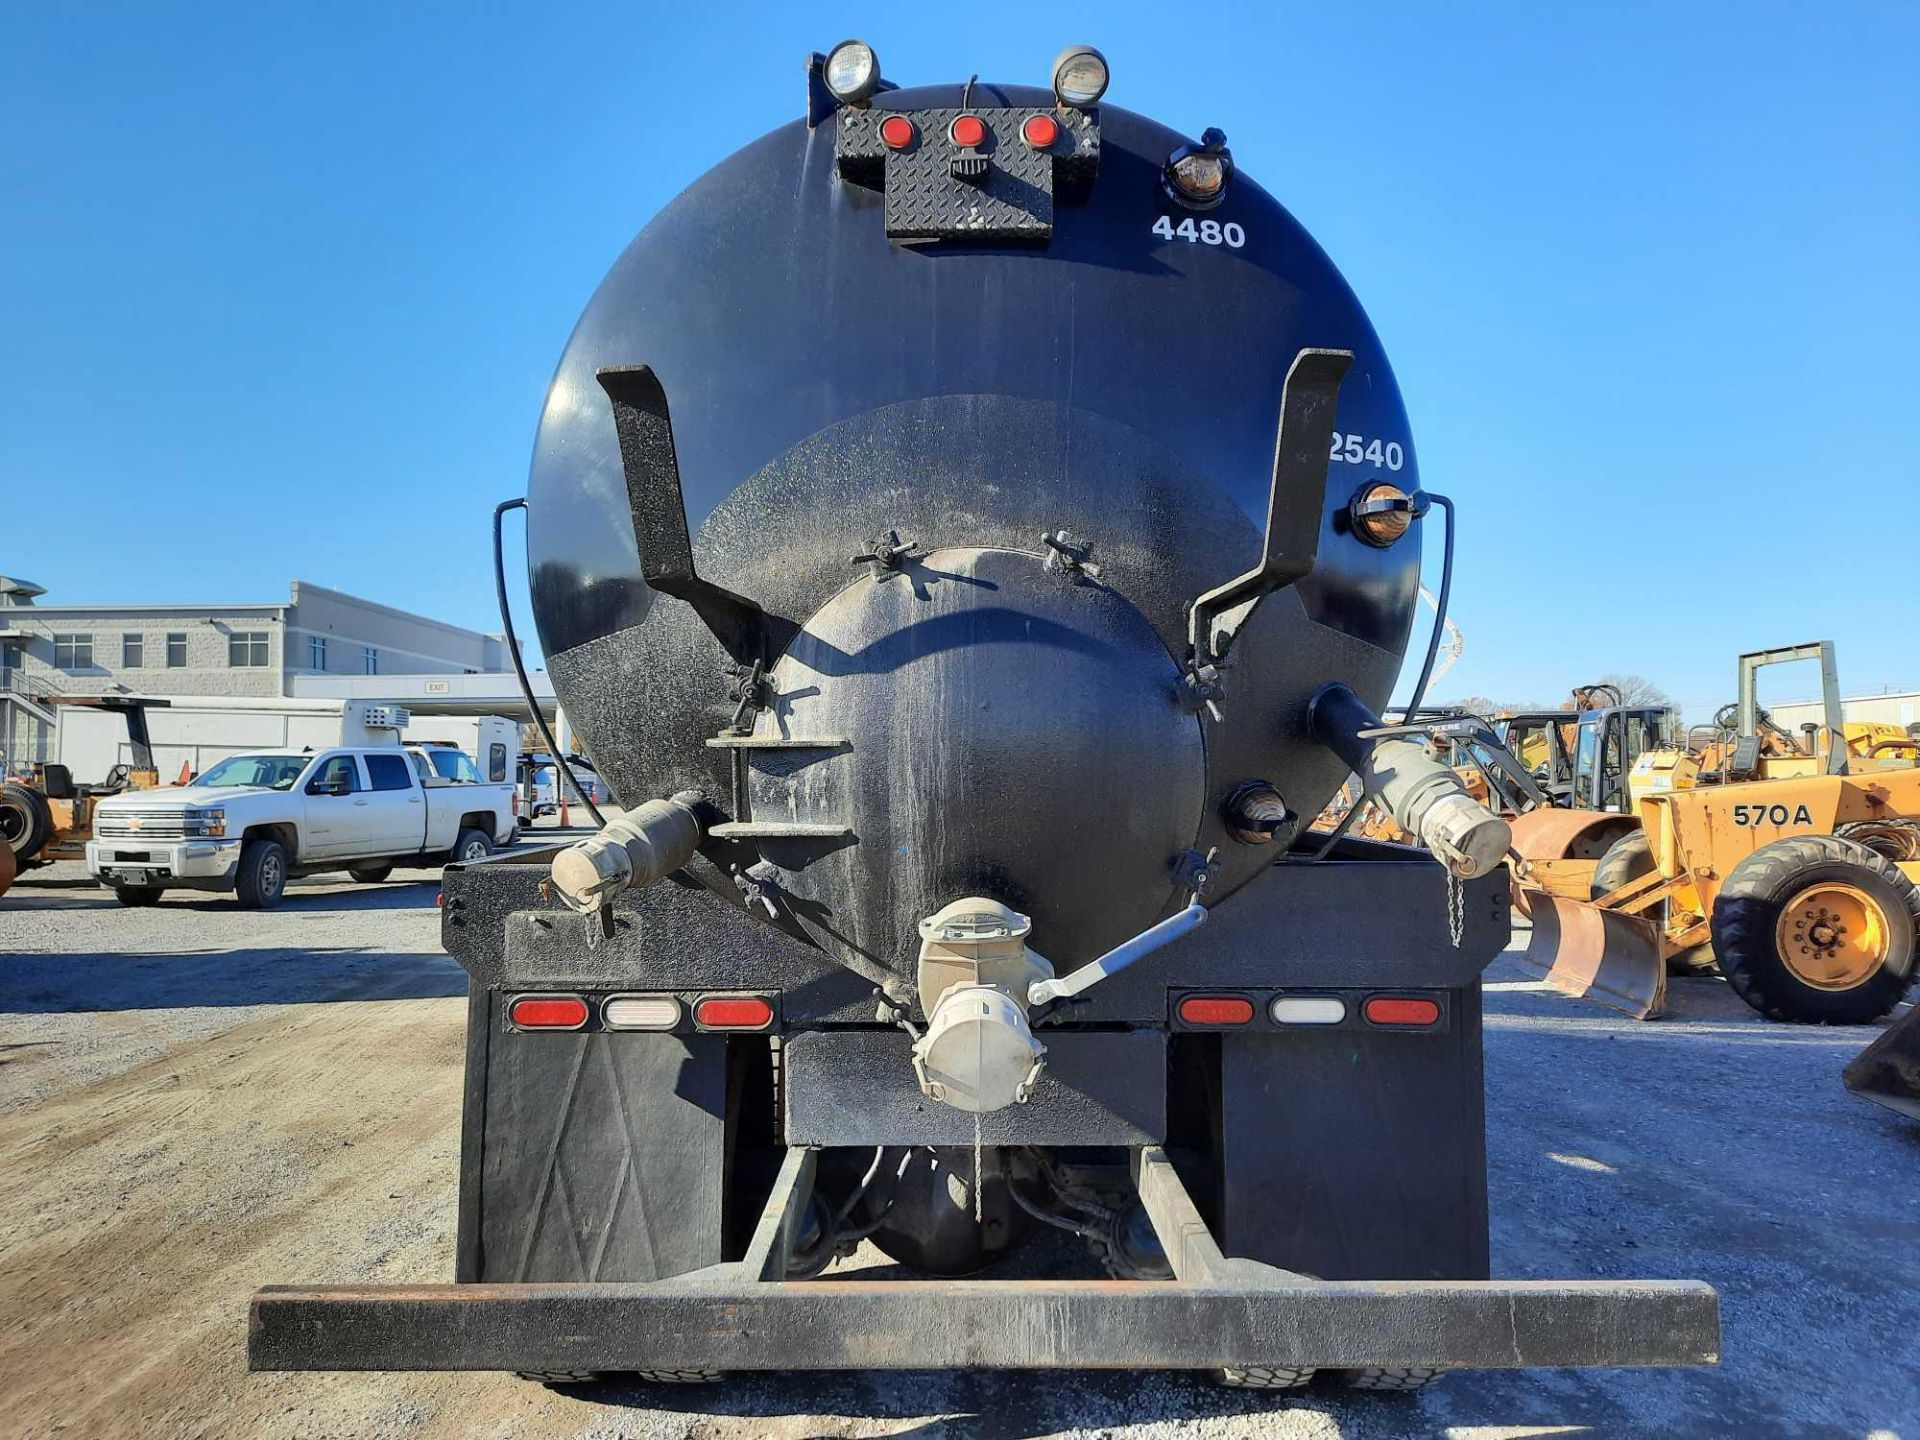 2003 KENWORTH T 800 SEPTIC TANK TRUCK - Image 23 of 25